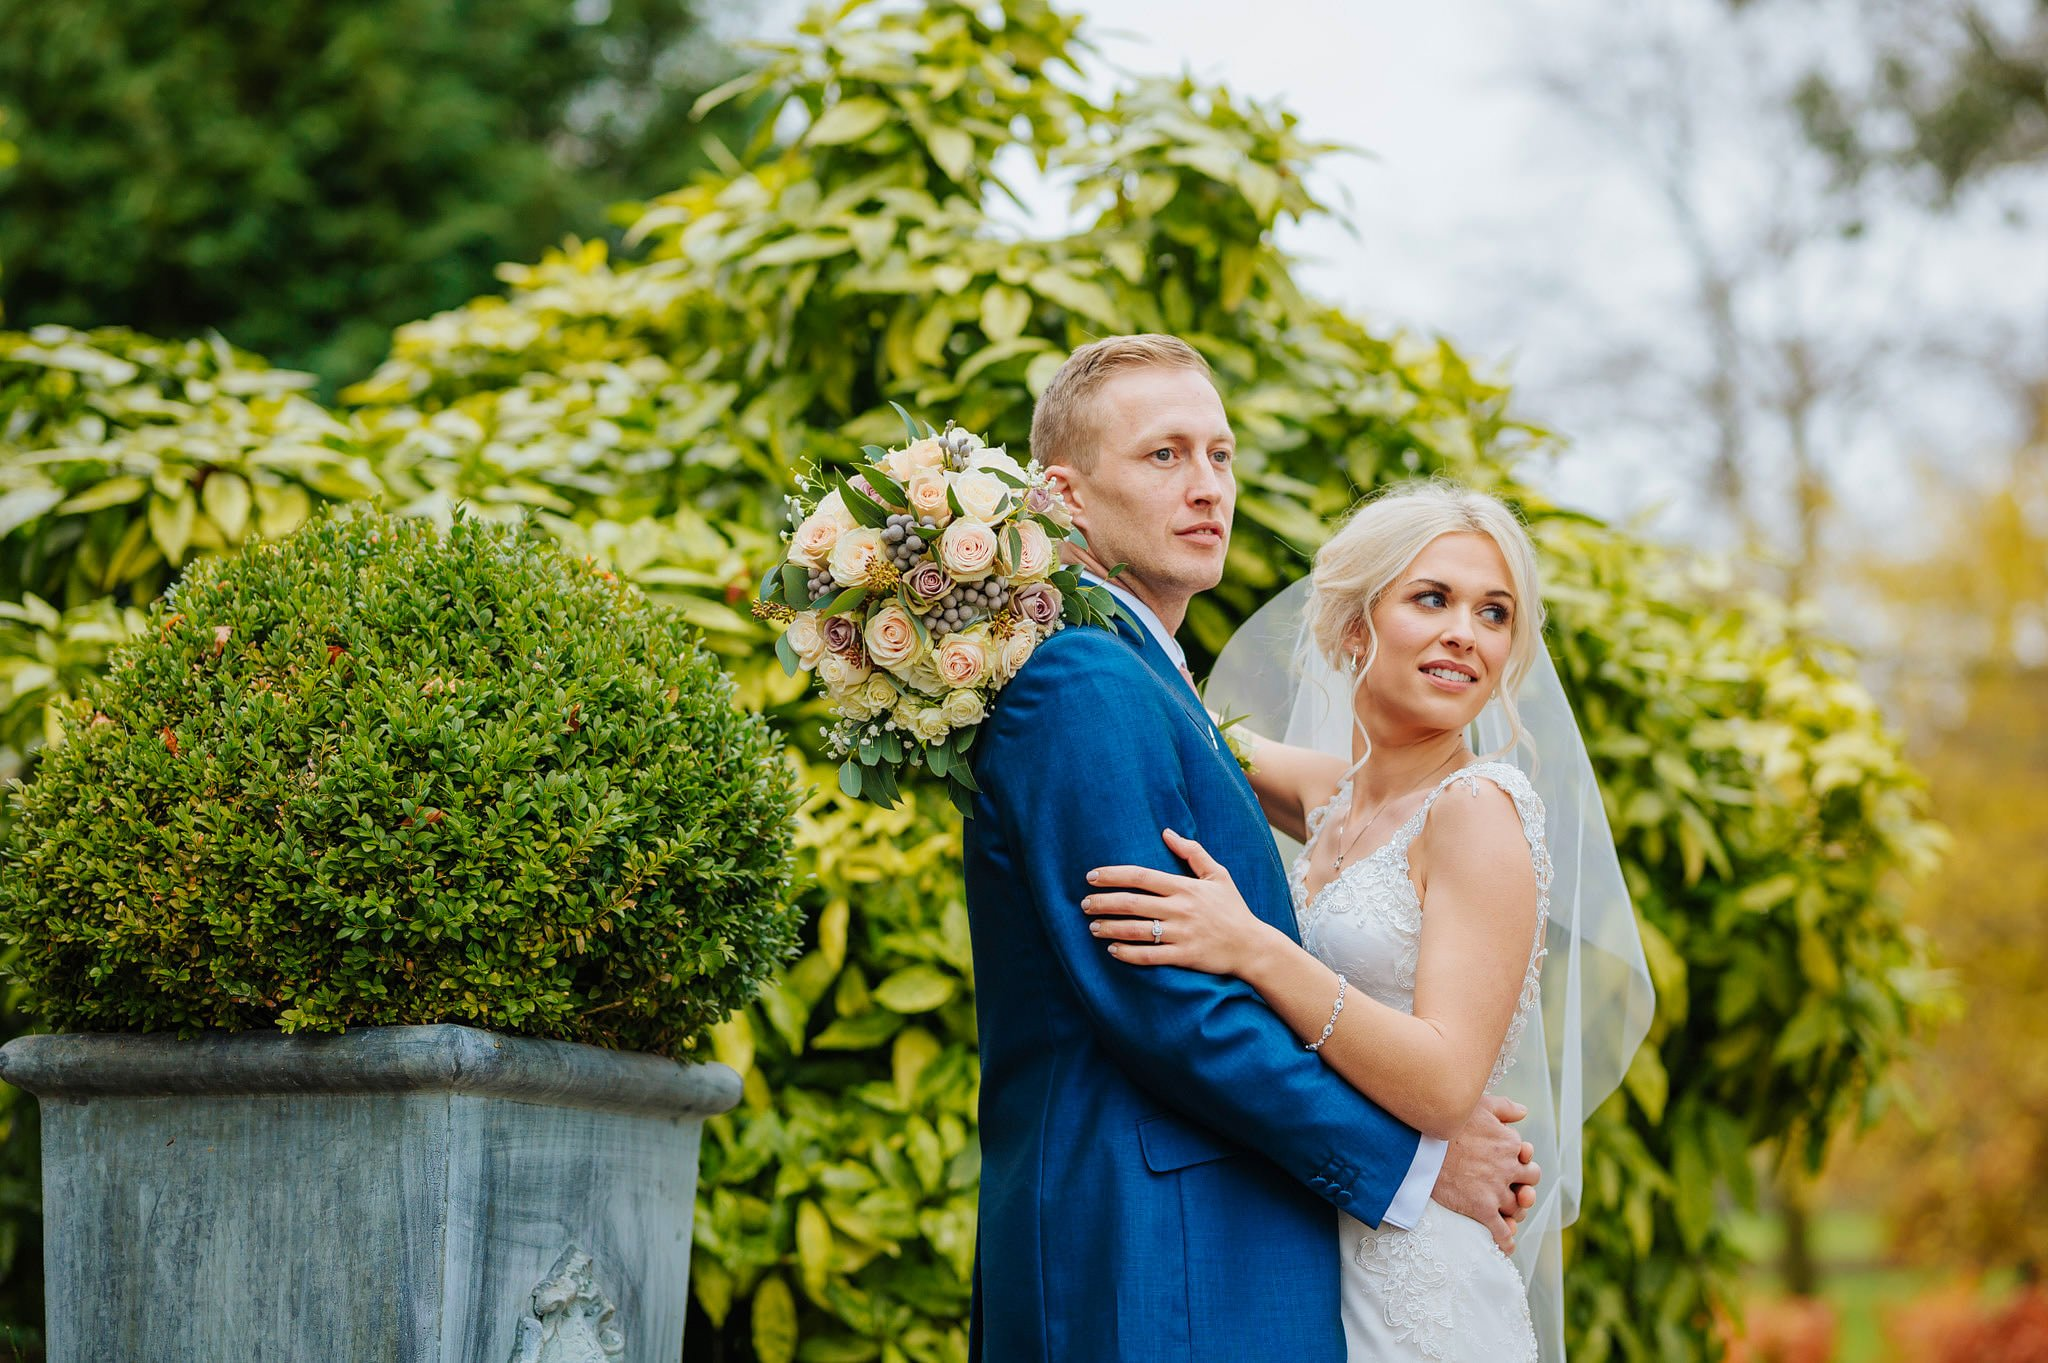 Sigma 85mm F1.4 ART review vs Wedding Photography 25